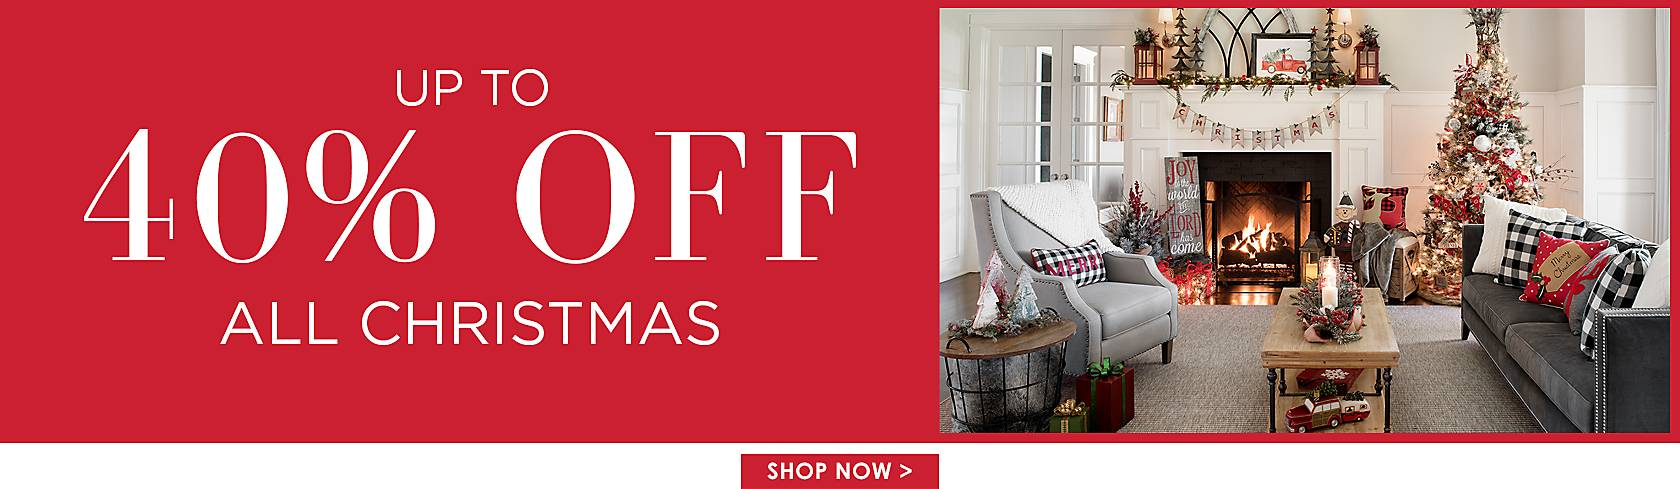 Up to 40% Off all  Christmas Decor! Hundreds of Items to Choose From! - Shop Now